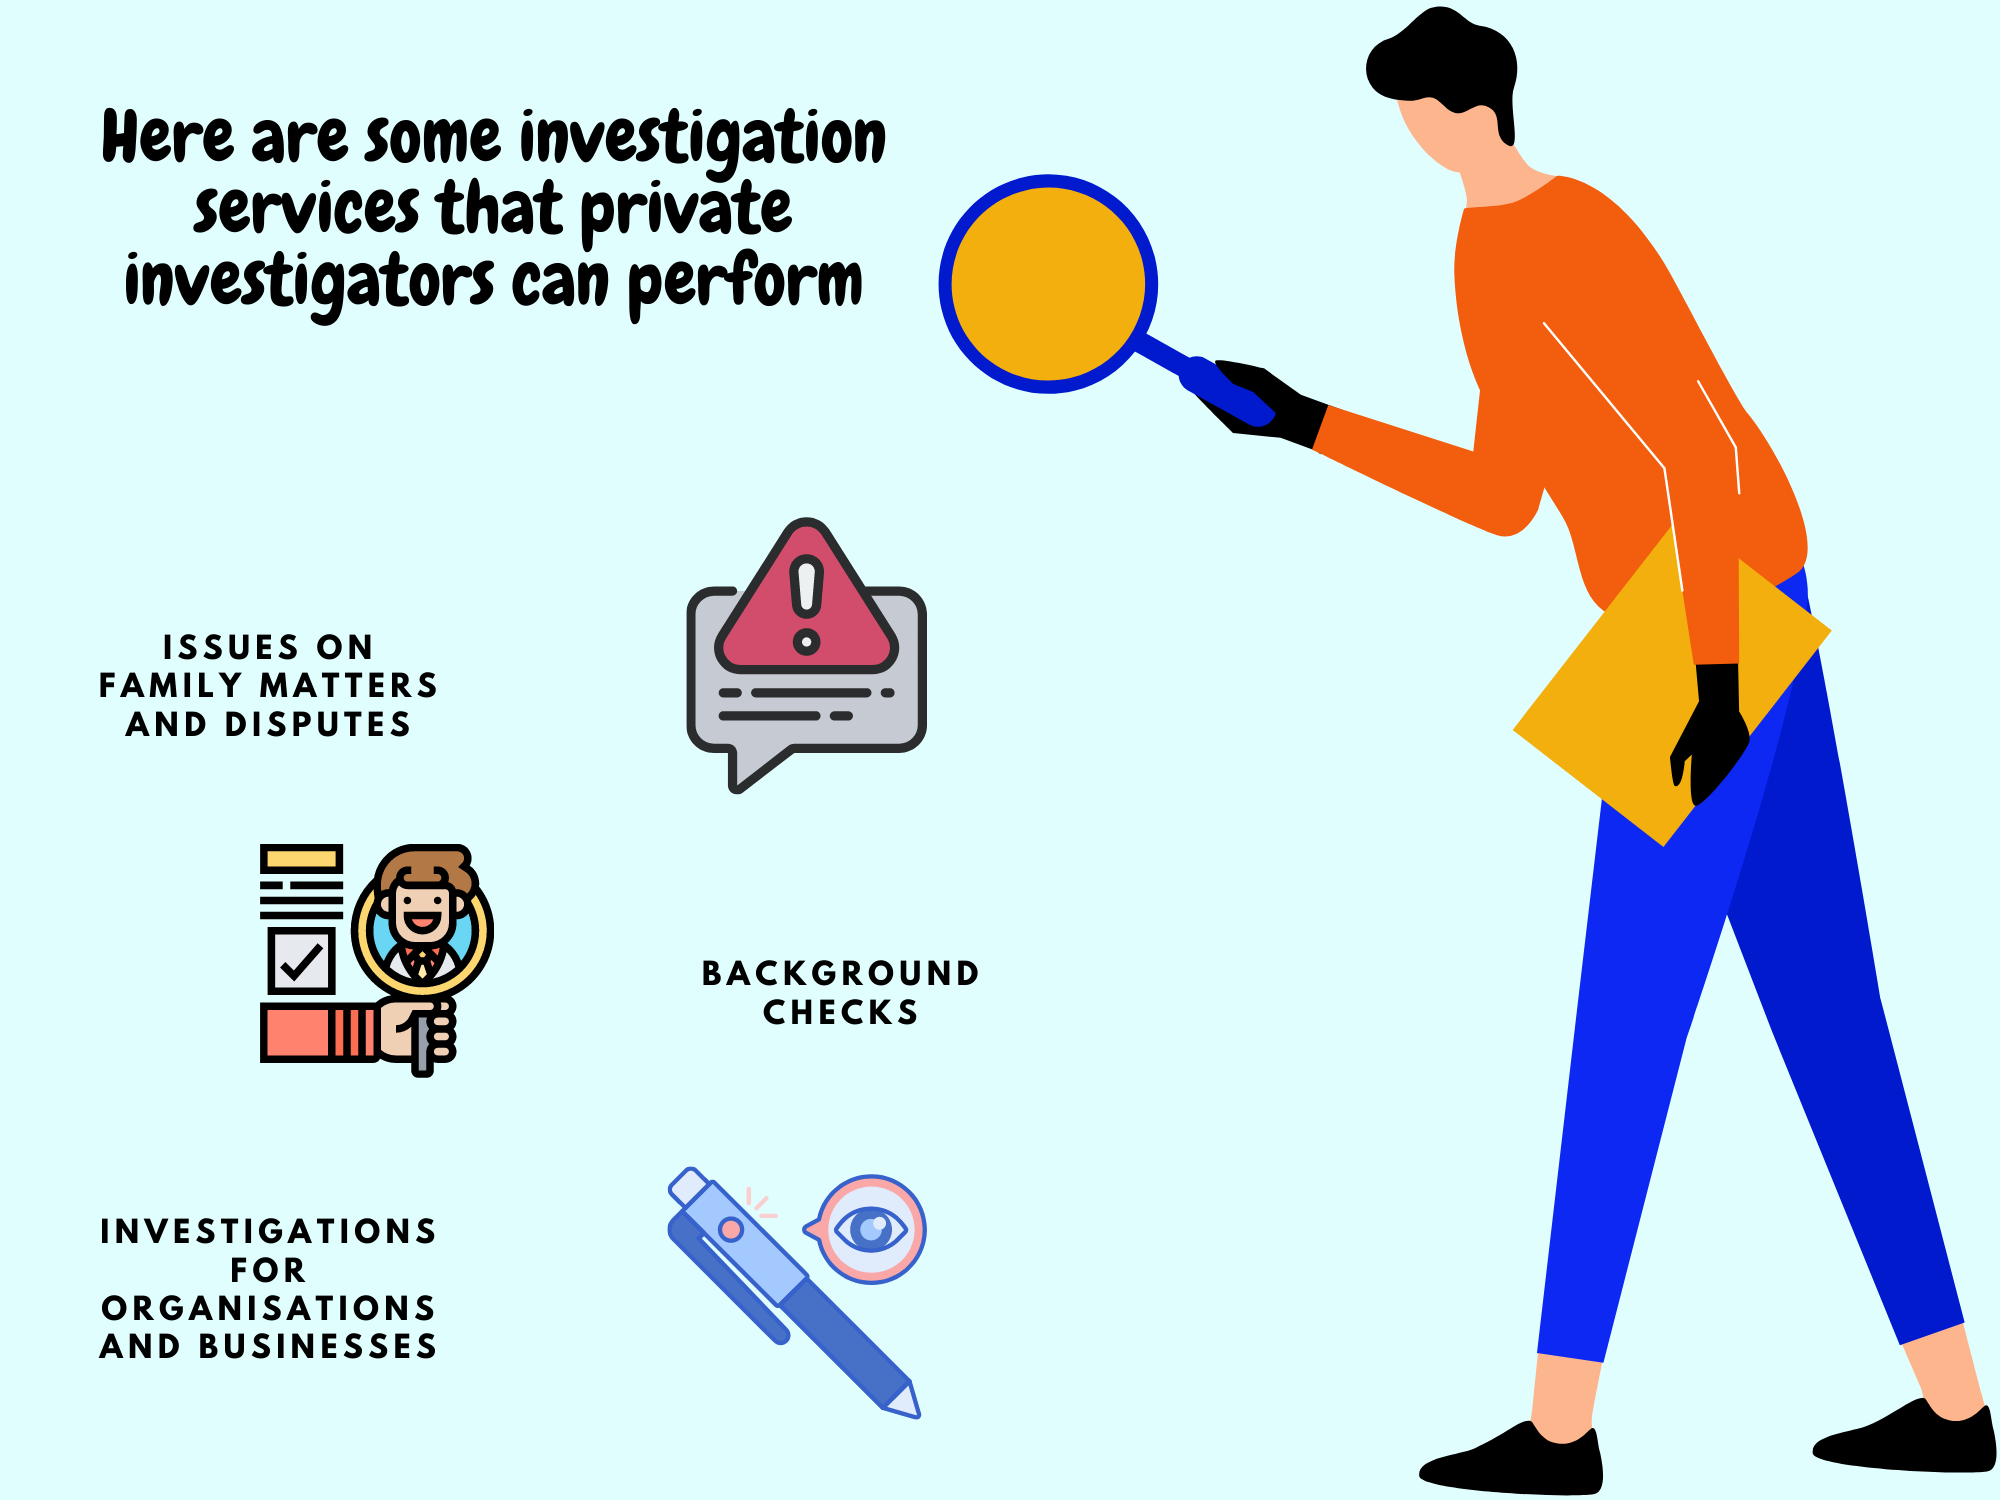 Here-are-some-investigation-services-that-private-investigators-can-perform